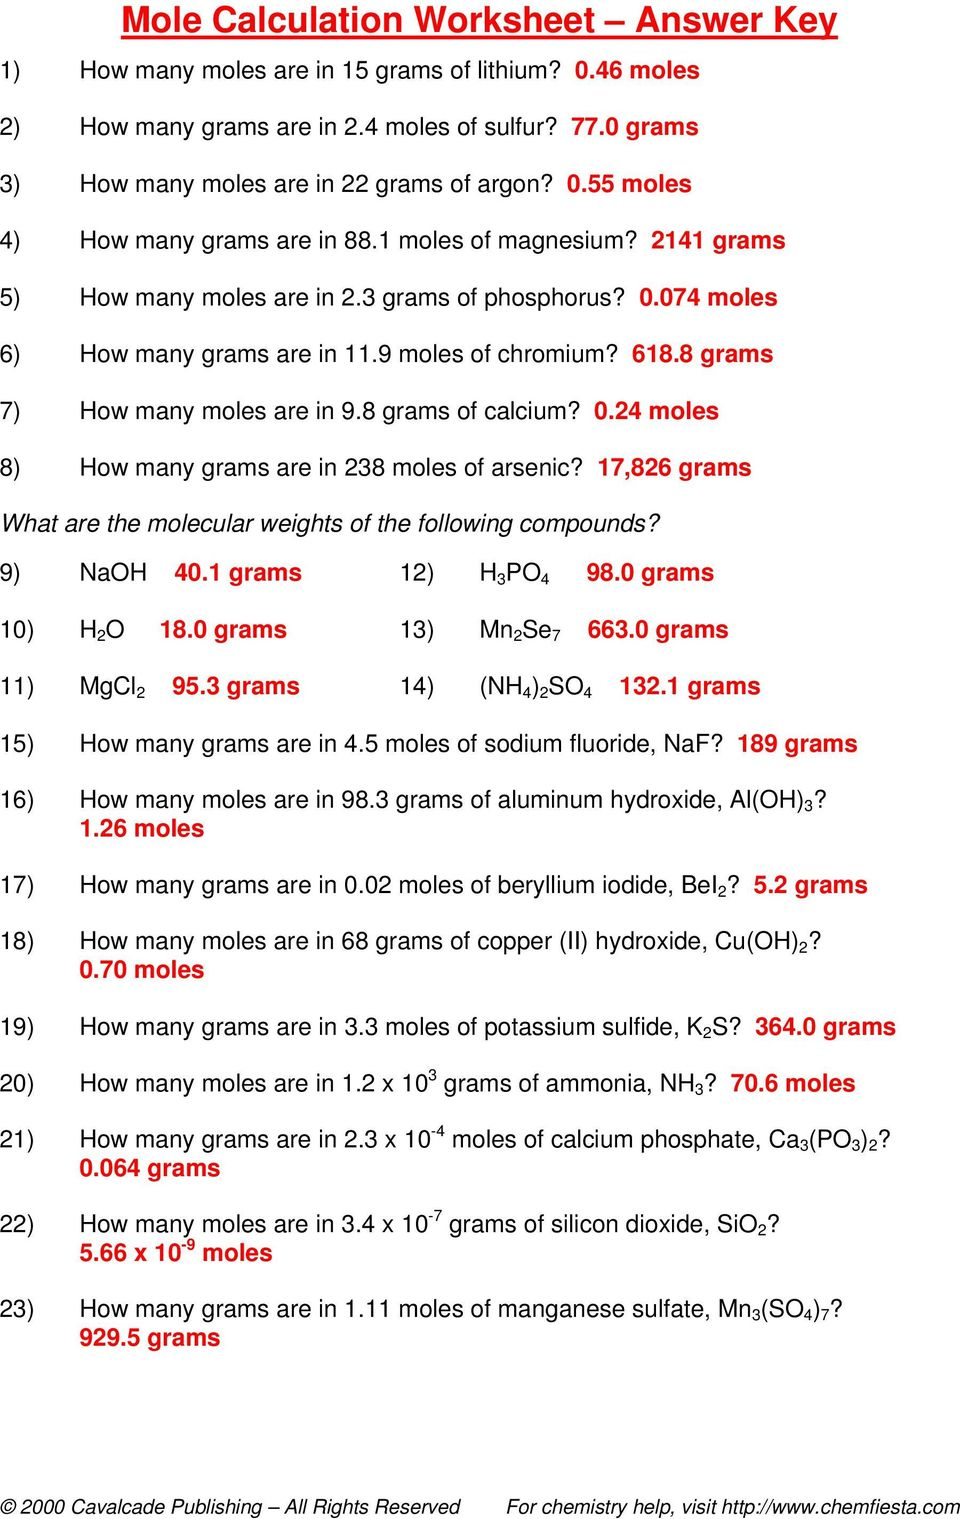 Printables Moles Molecules And Grams Worksheet molecules and grams worksheet answer key 8 of calcium 0 24 moles how many are in 238 moles